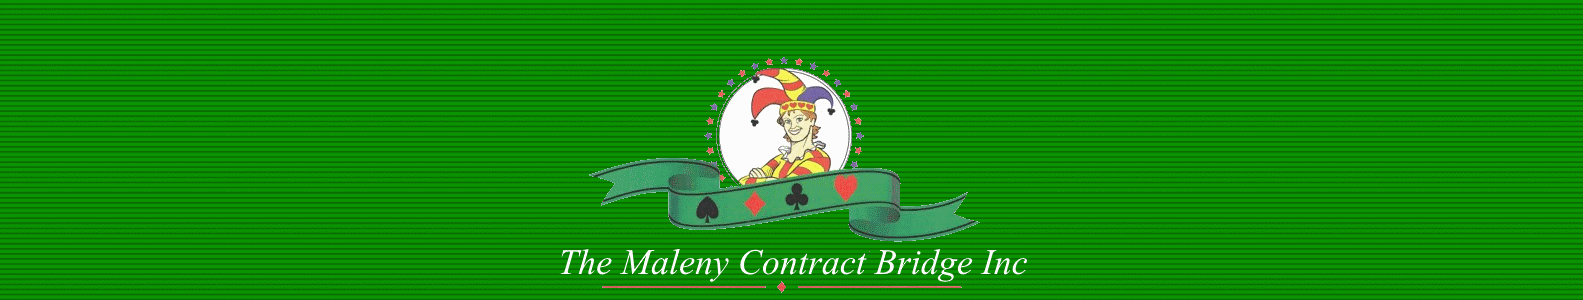 How to Register for Maleny Bridge Club Pairs Games